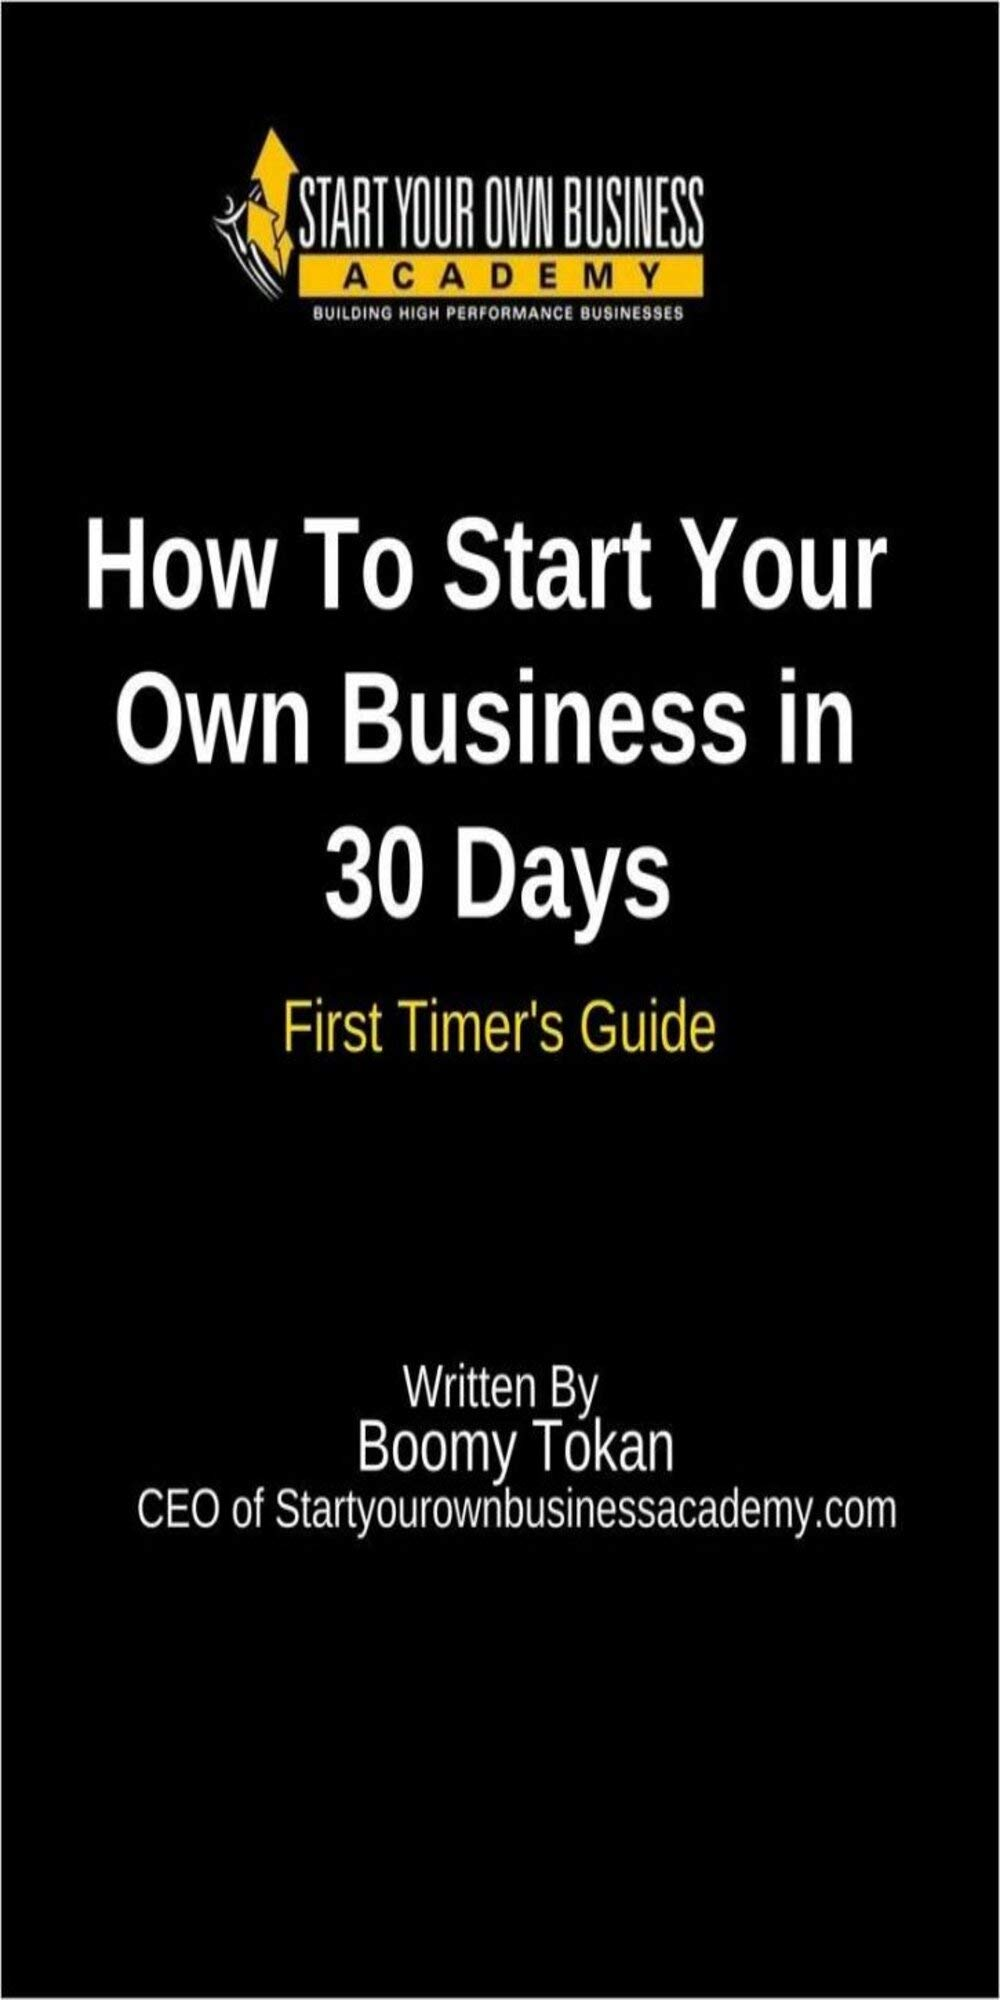 First Timer's Guide '' How to start your own business in 30 days ''